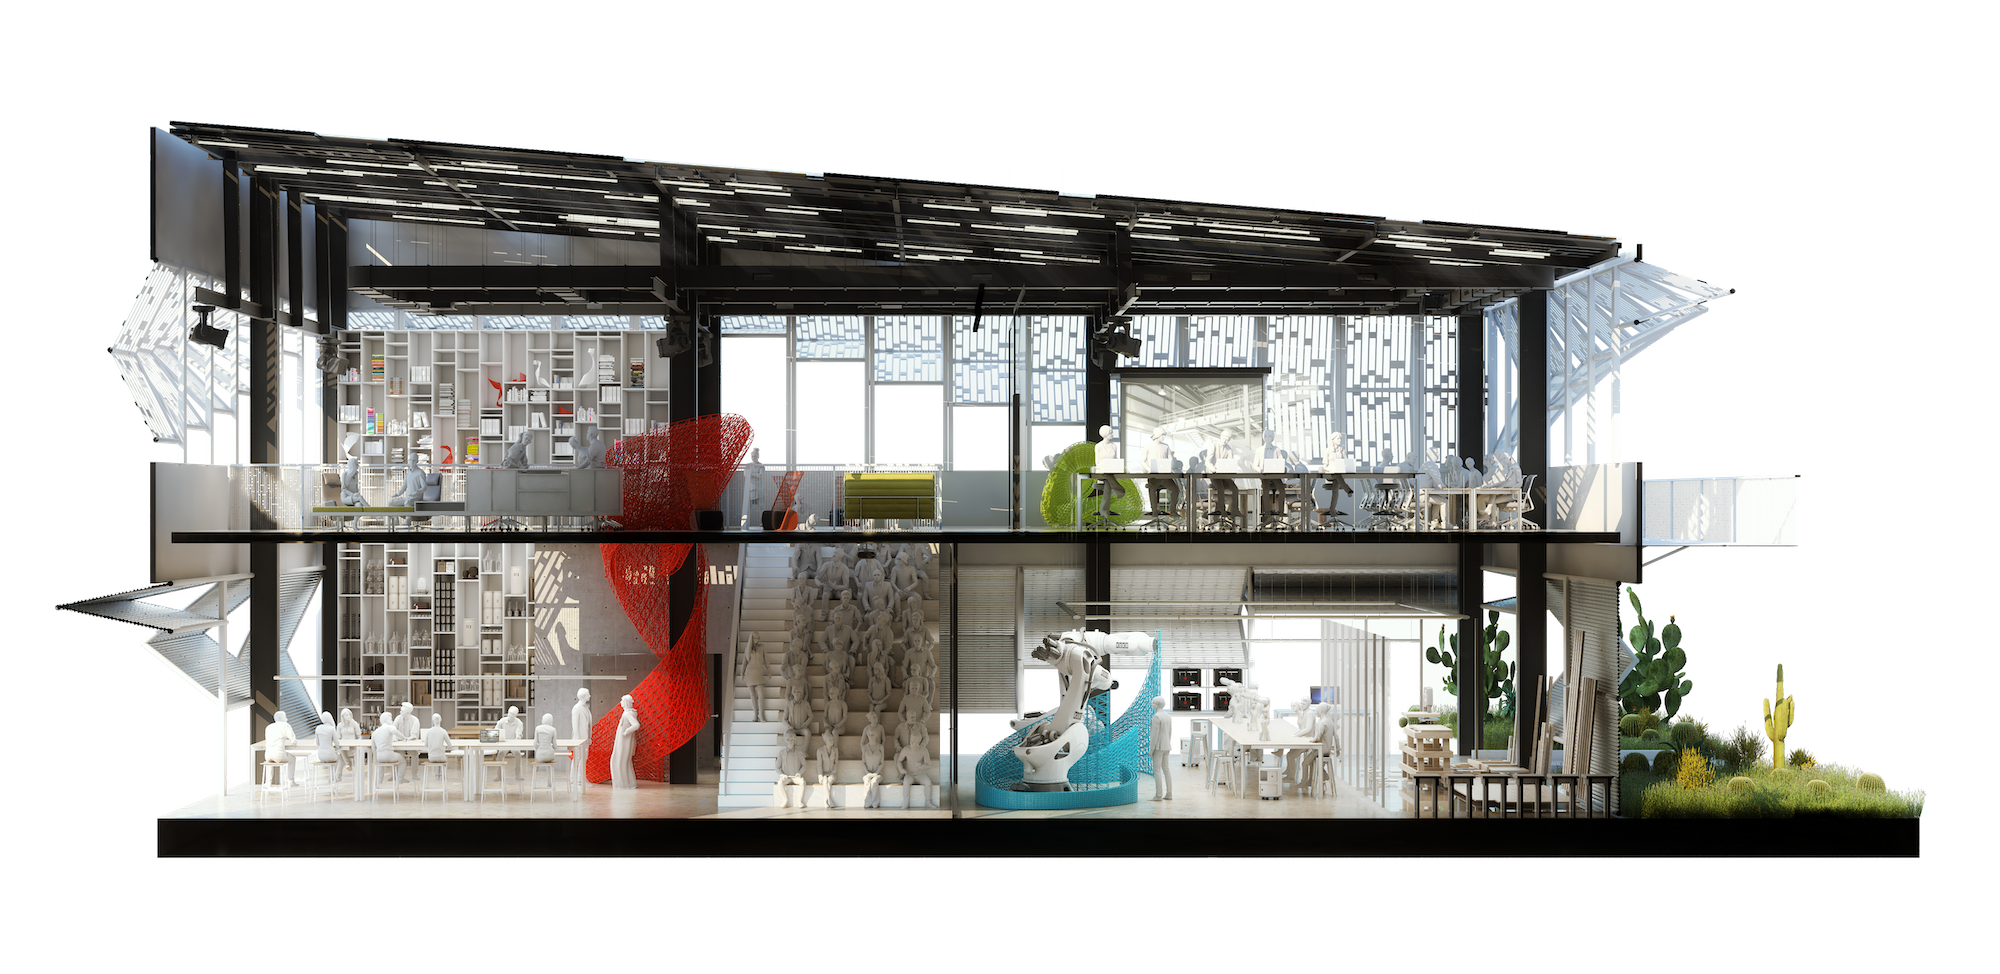 Section Render View Showing MEAL* DESIGN INNOVATION CAMPUS MEAL* Middle East Architecture Lab